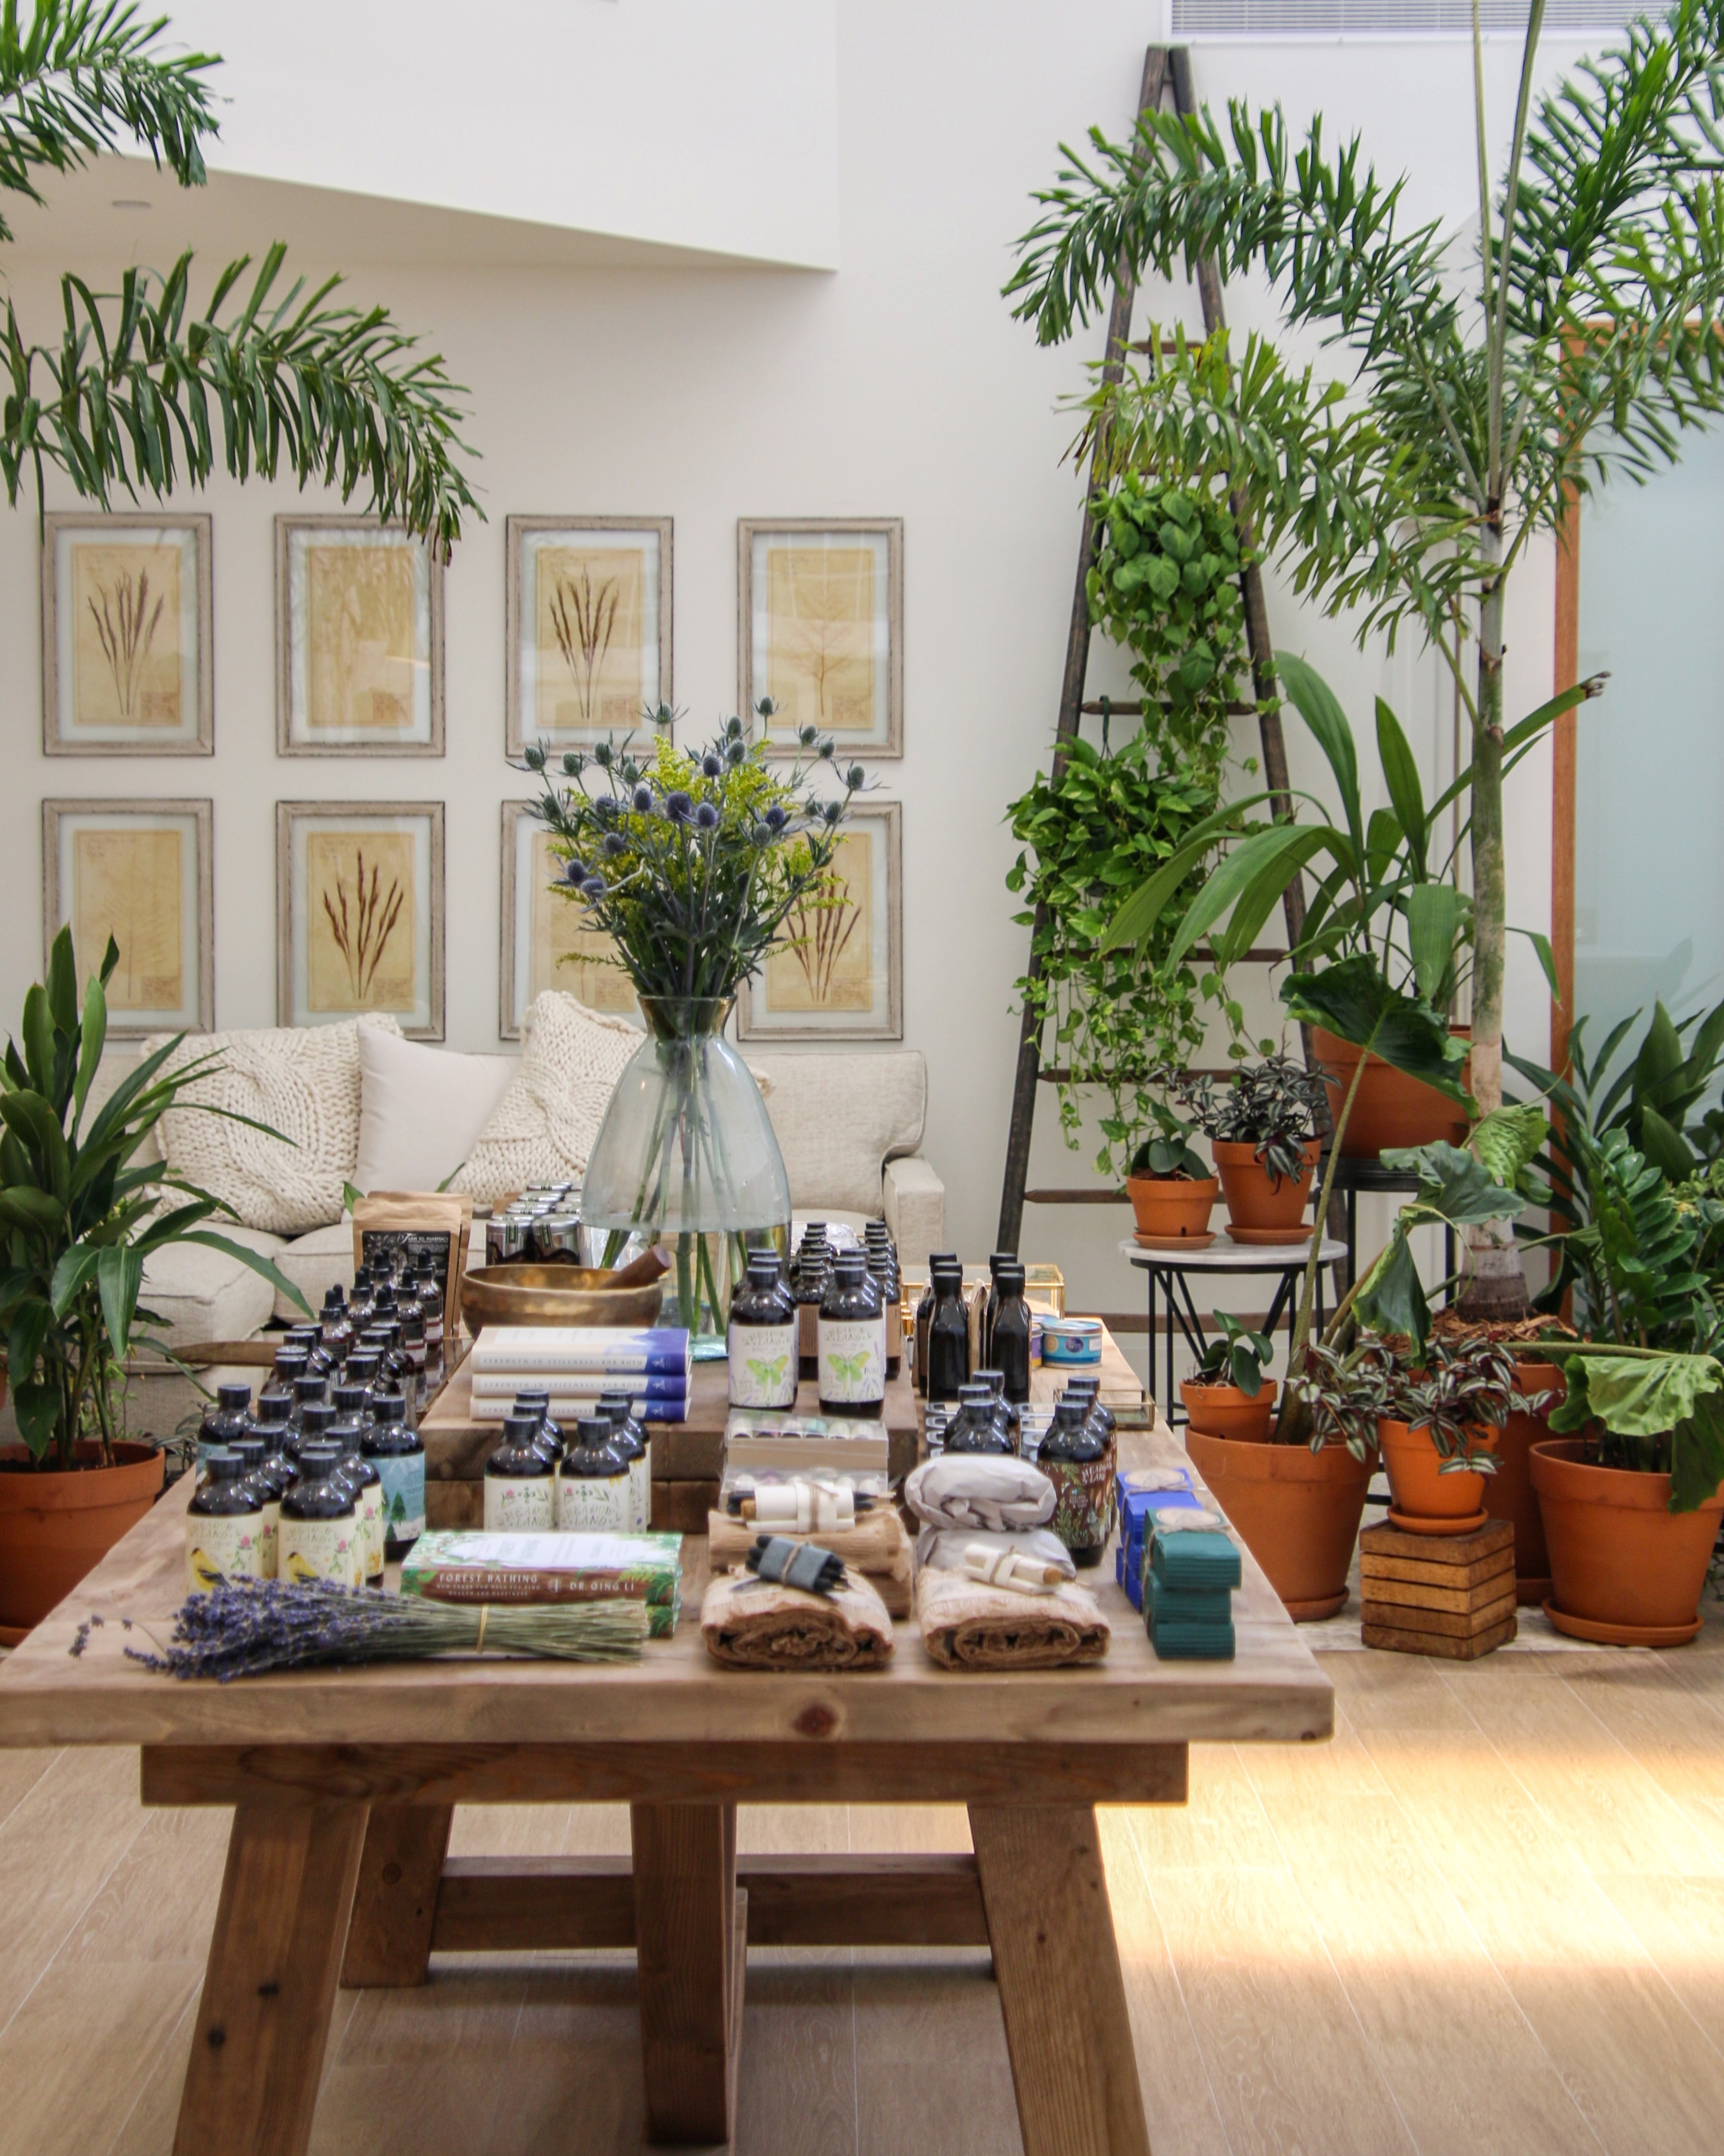 JOIN THE FEEL GOOD MOVEMENT AT BOTANIKA UNION – NOW OPEN!